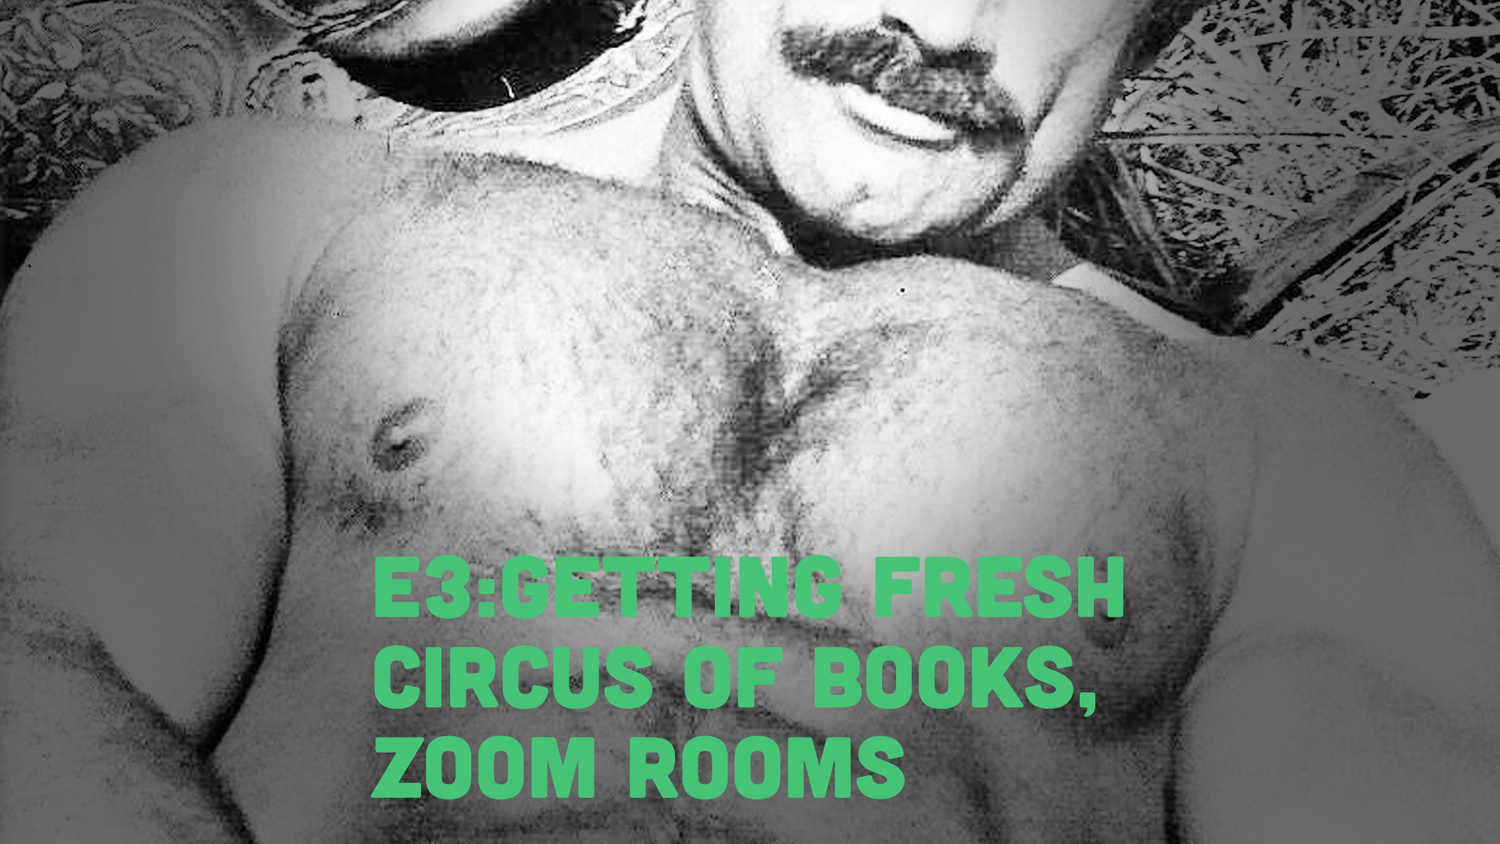 Fruitbowl - E3 - GETTING FRESH with FRUITBOWL: Adam's Sexy Video Chats & Circus of Books